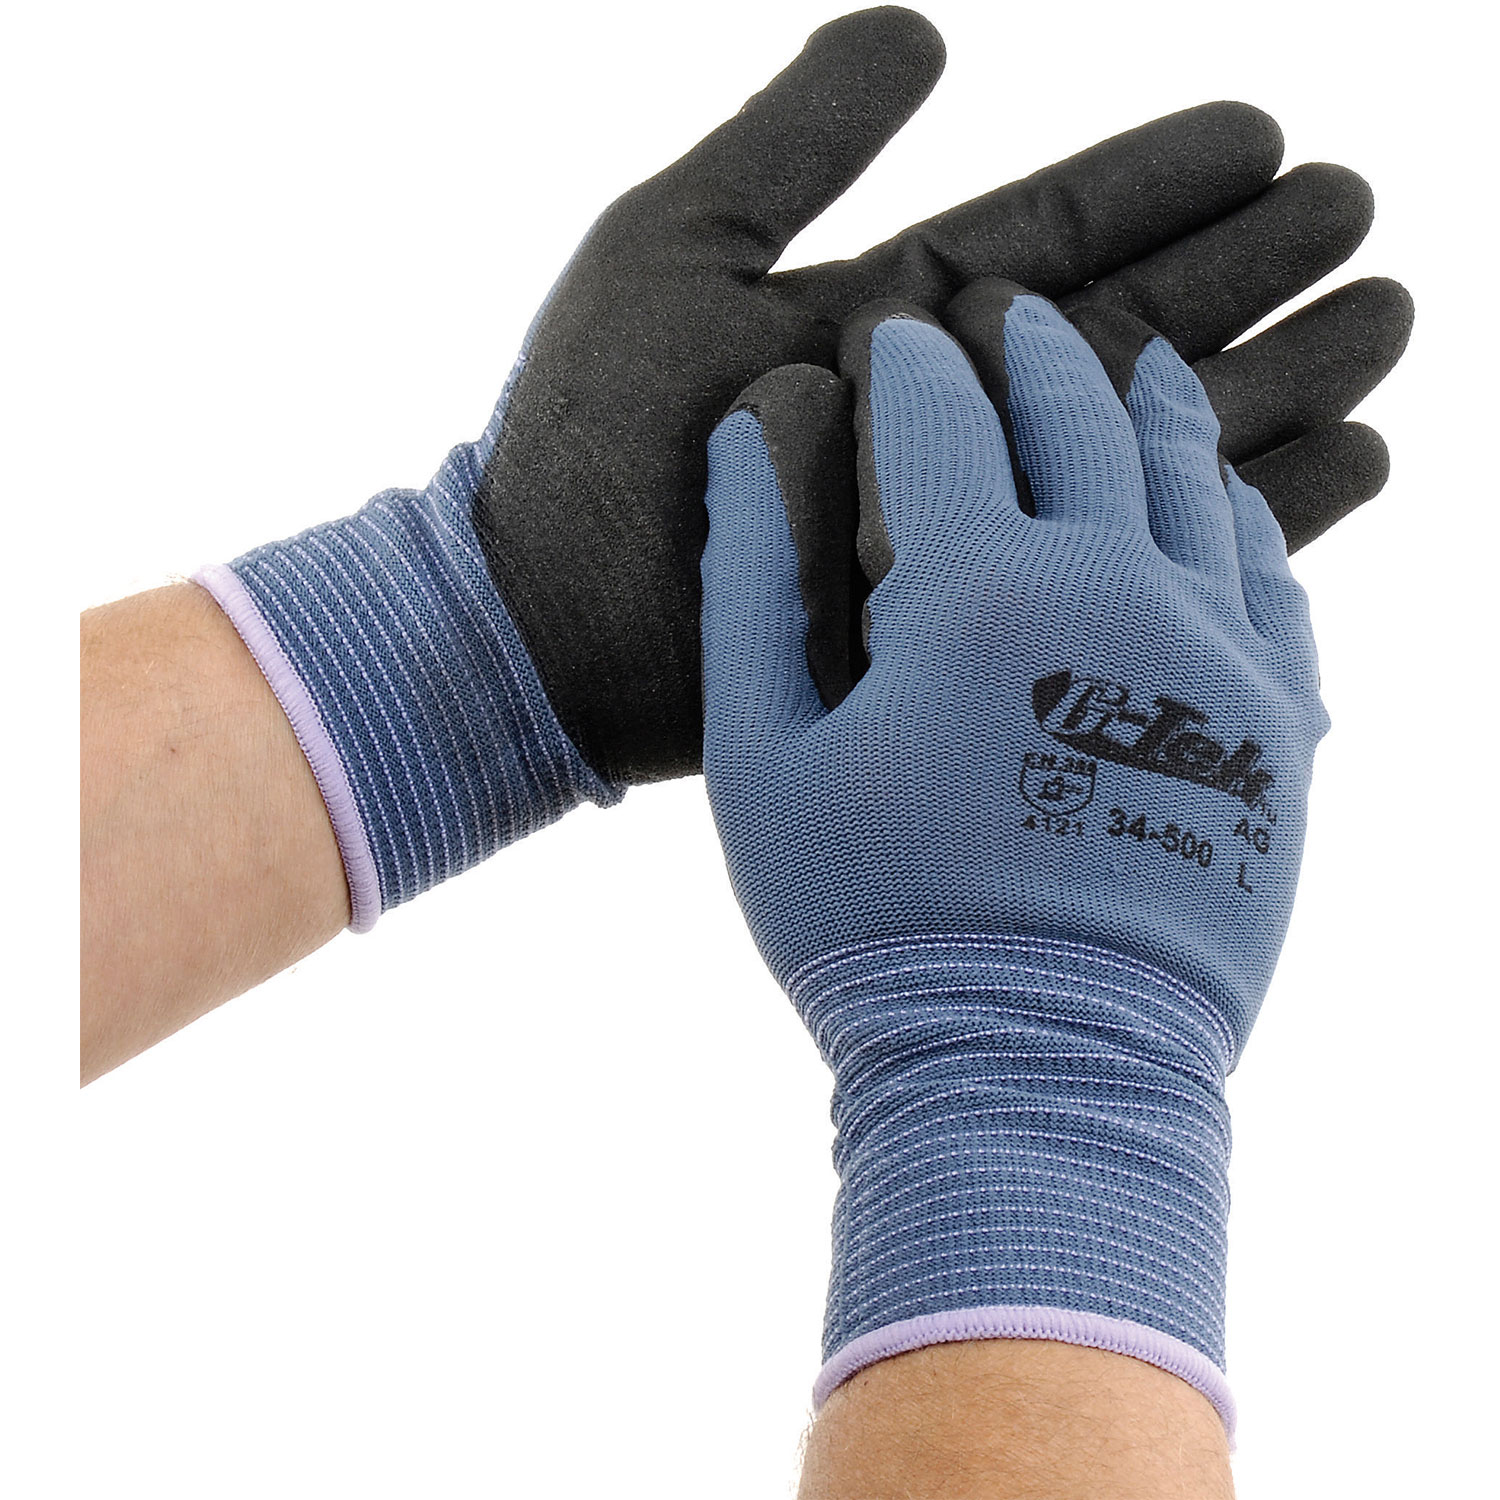 PIP G-Tek® Nitrile MicroSurface Nylon Grip Gloves, Blue/Black, XL, 12 Pairs, Lot of 1